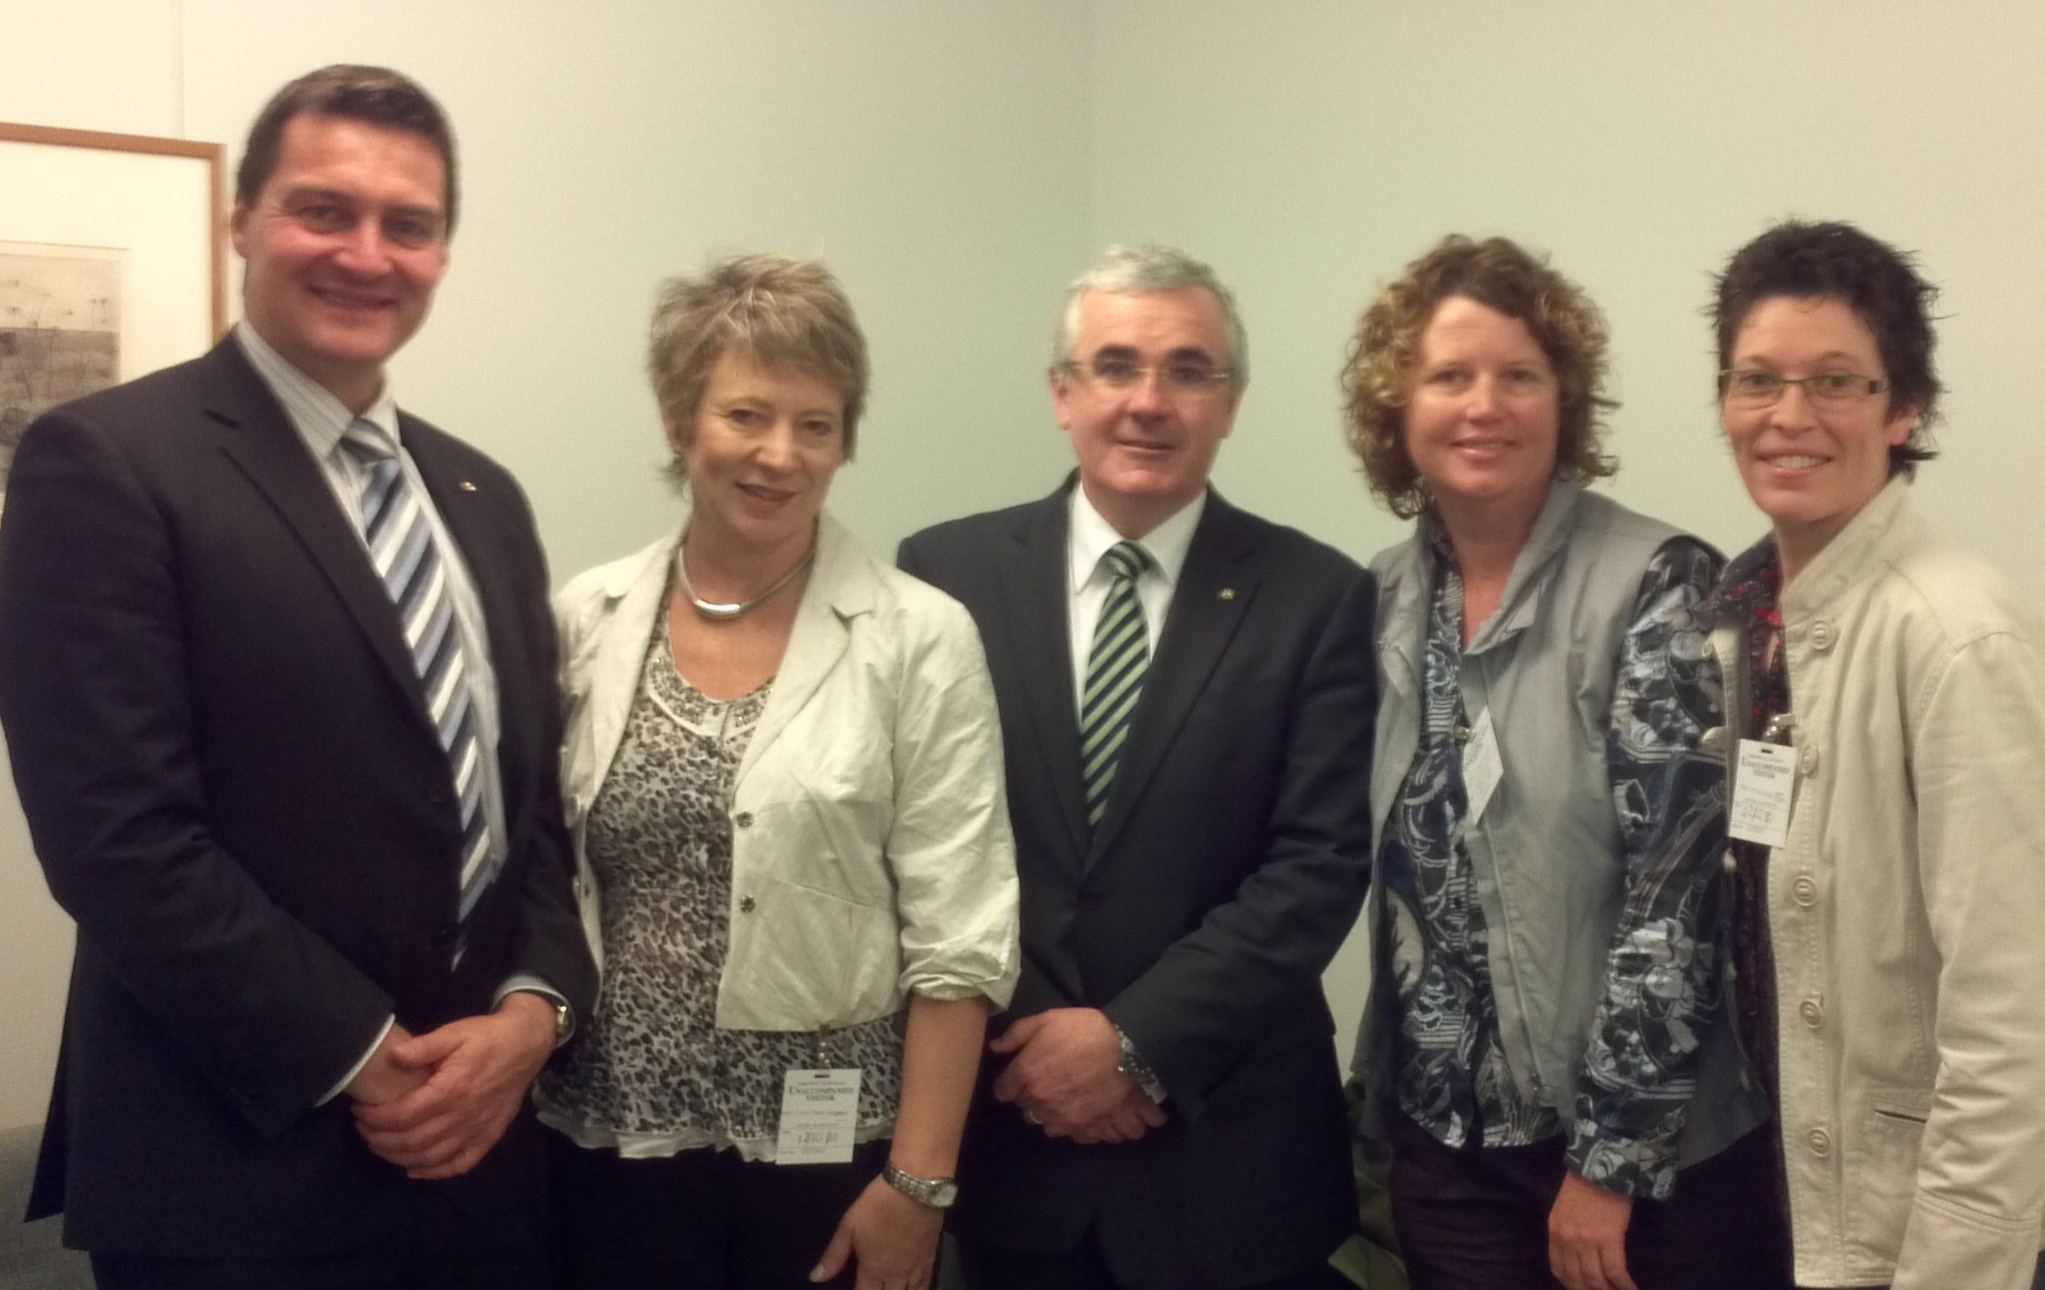 Lobbying MHR Andrew Wilkie in Canberra, with Rodney, Jen and Jen. October 2011